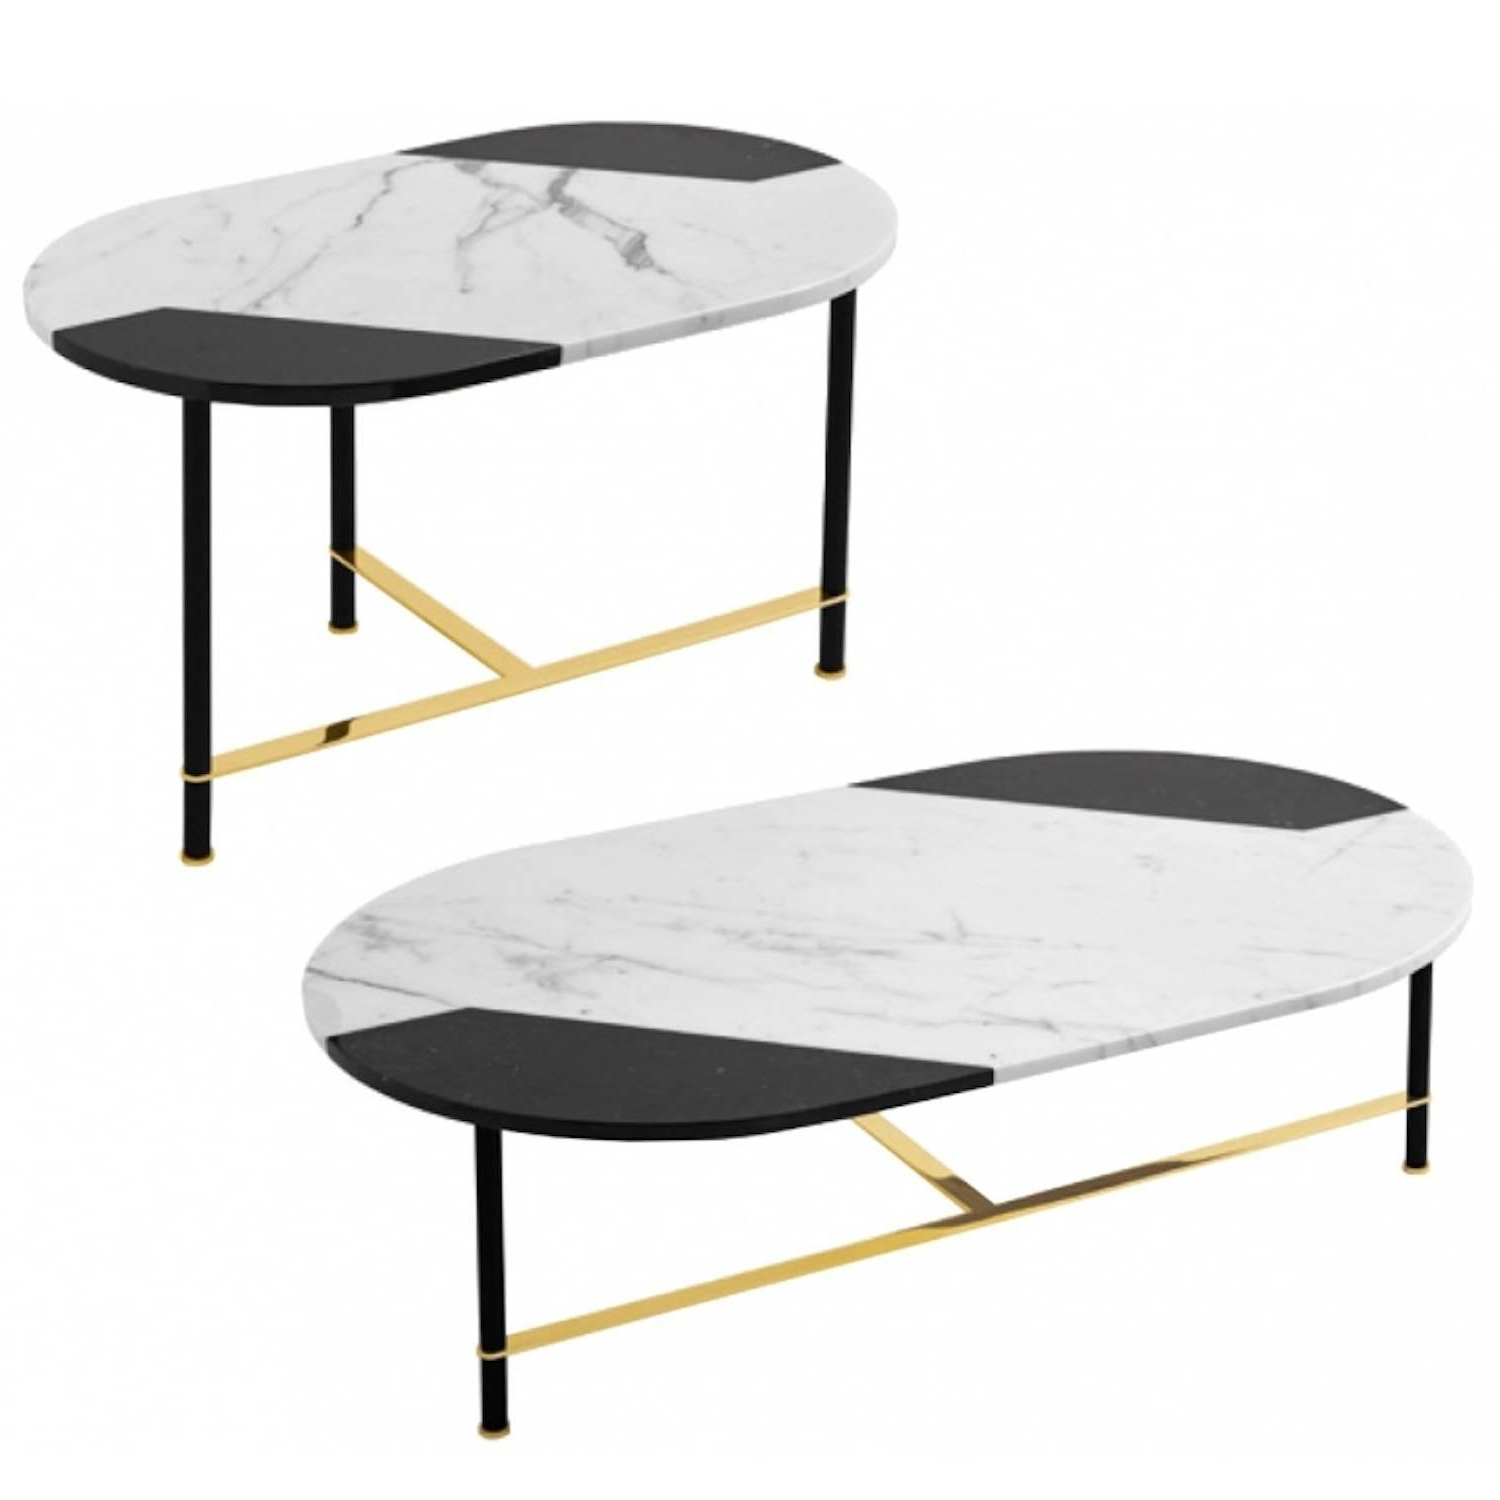 Smart Large Round Marble Top Coffee Tables For Most Up To Date Coffee Table Or Side Table In Black And White Inlaid Marble Top With (View 18 of 20)